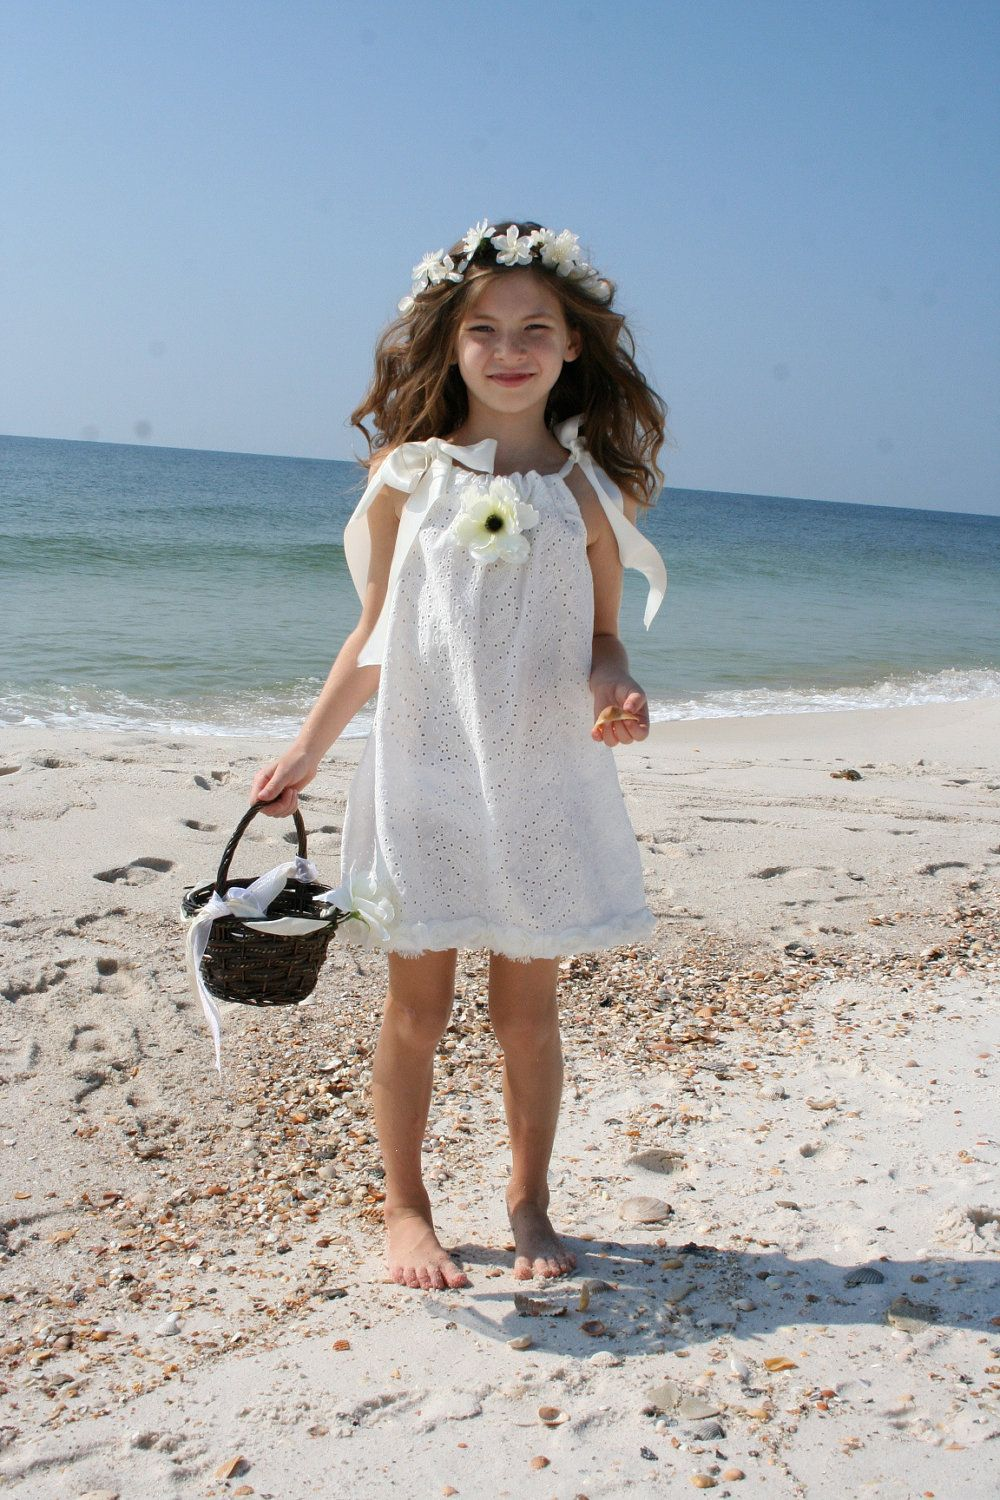 White Paisley Eyelet Flower Dress Perfect For A Beach Wedding Or Portraits